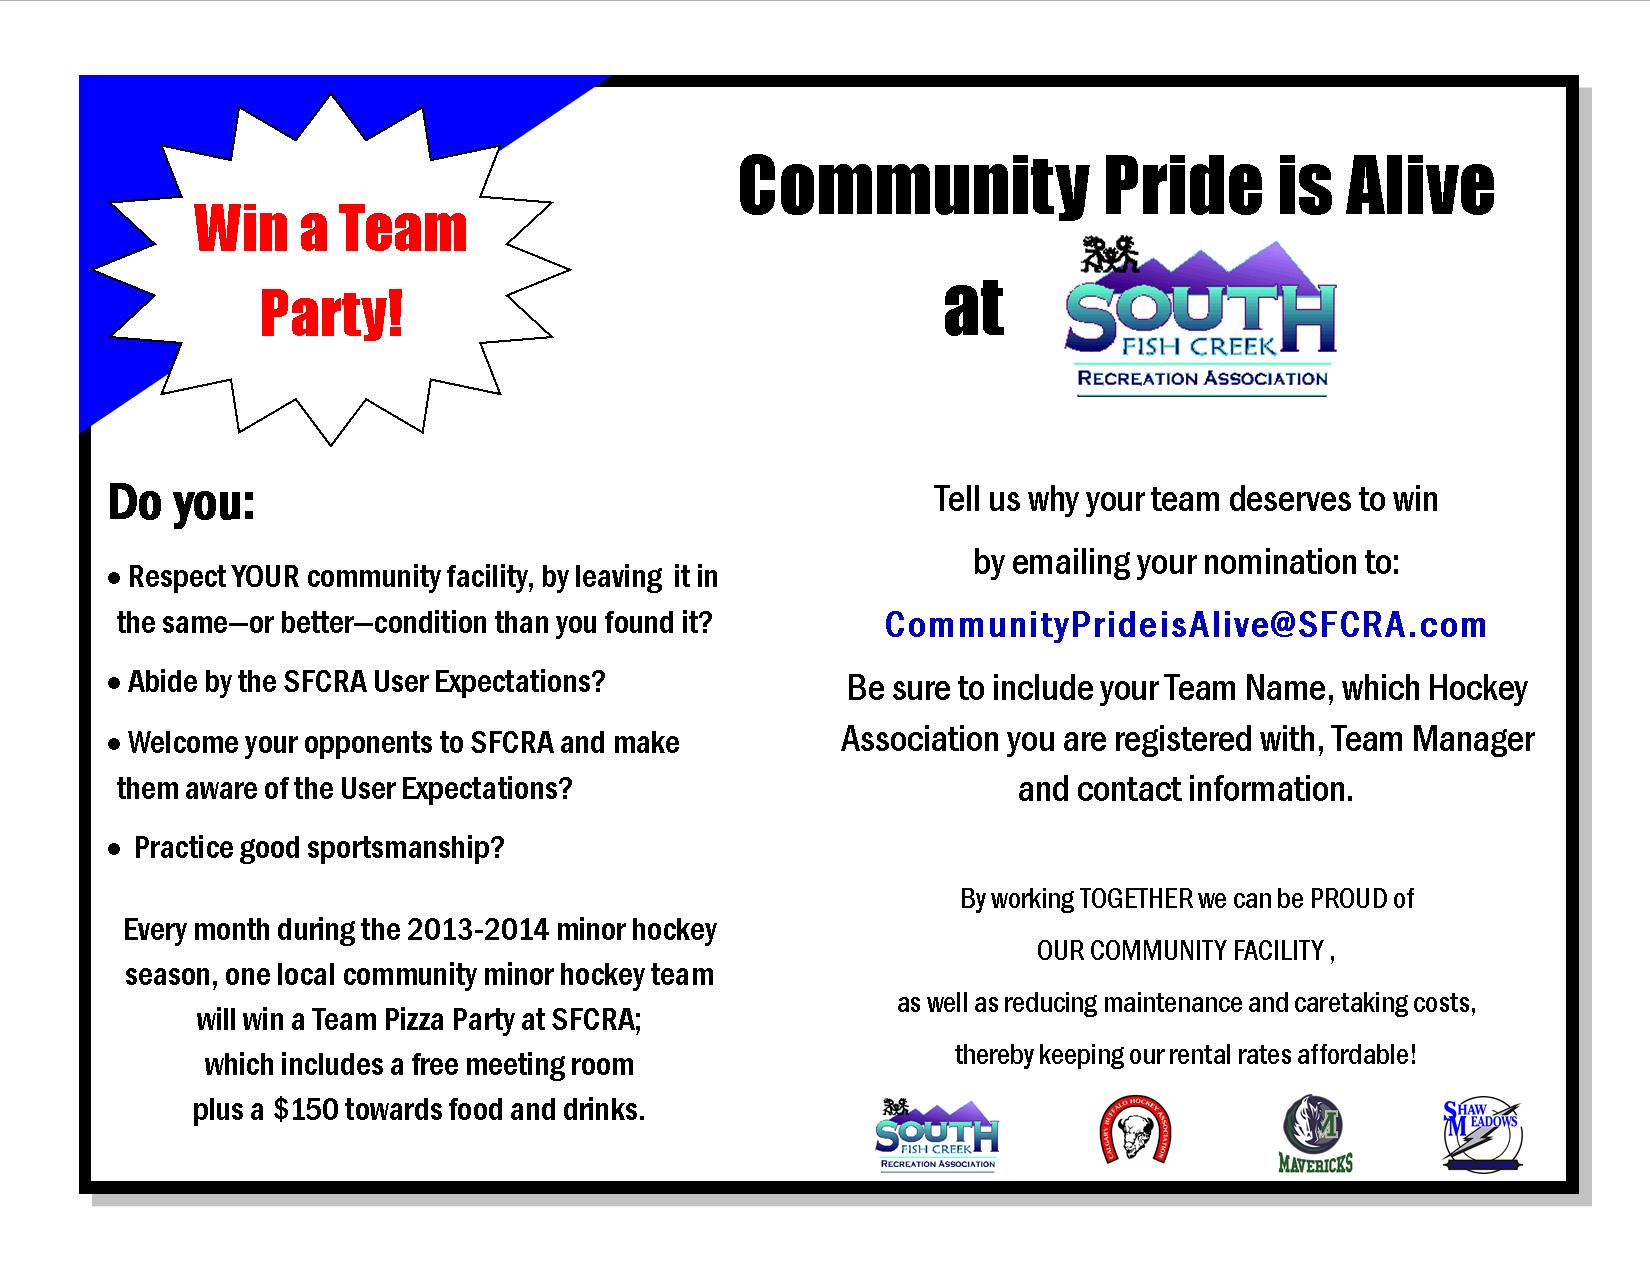 Community Pride is Alive - 2013